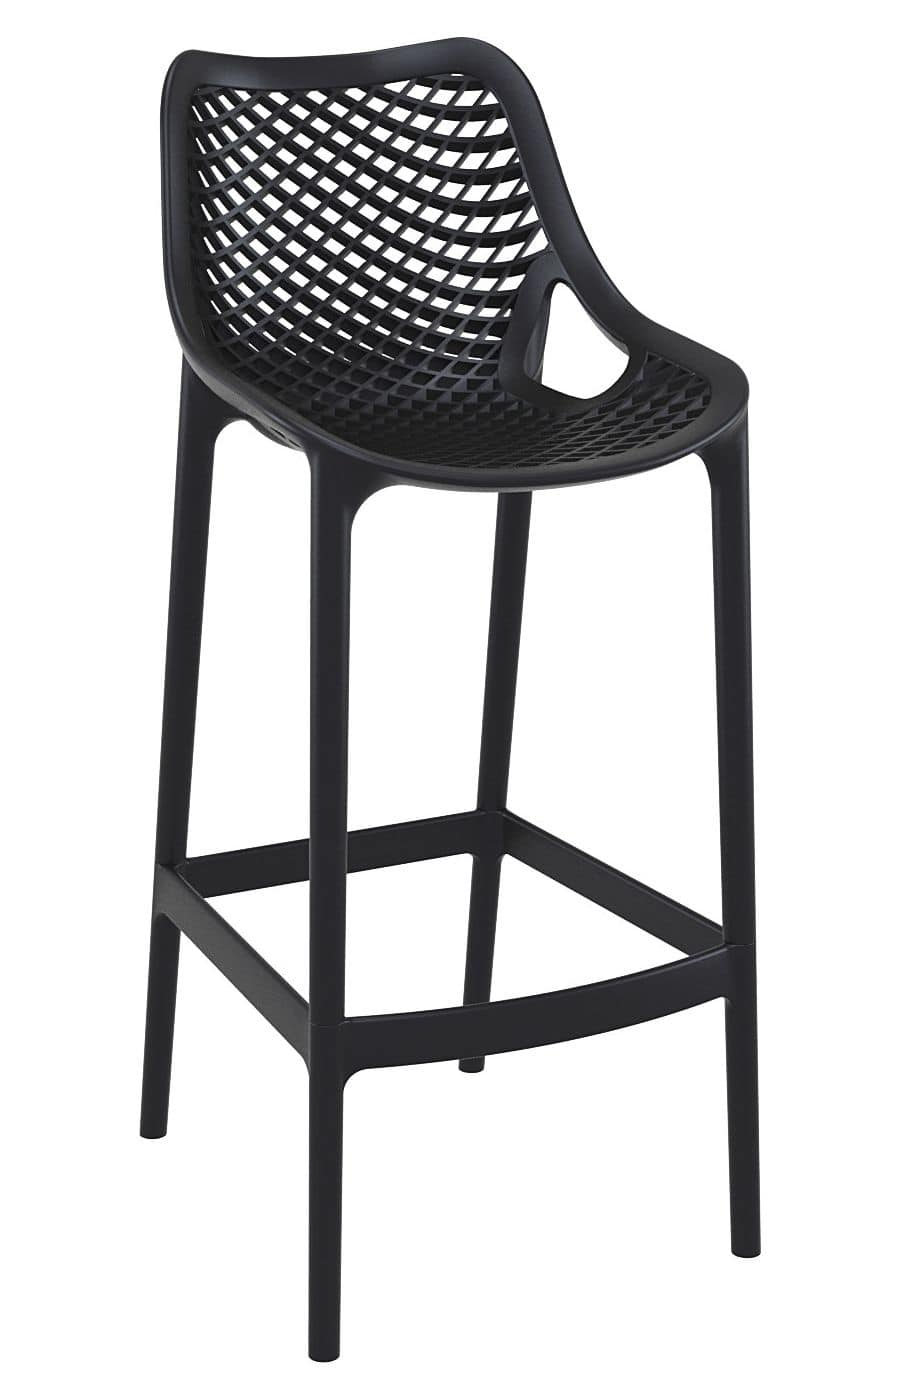 Alice - SG, Modern stackable stool ideal for bar and hotel